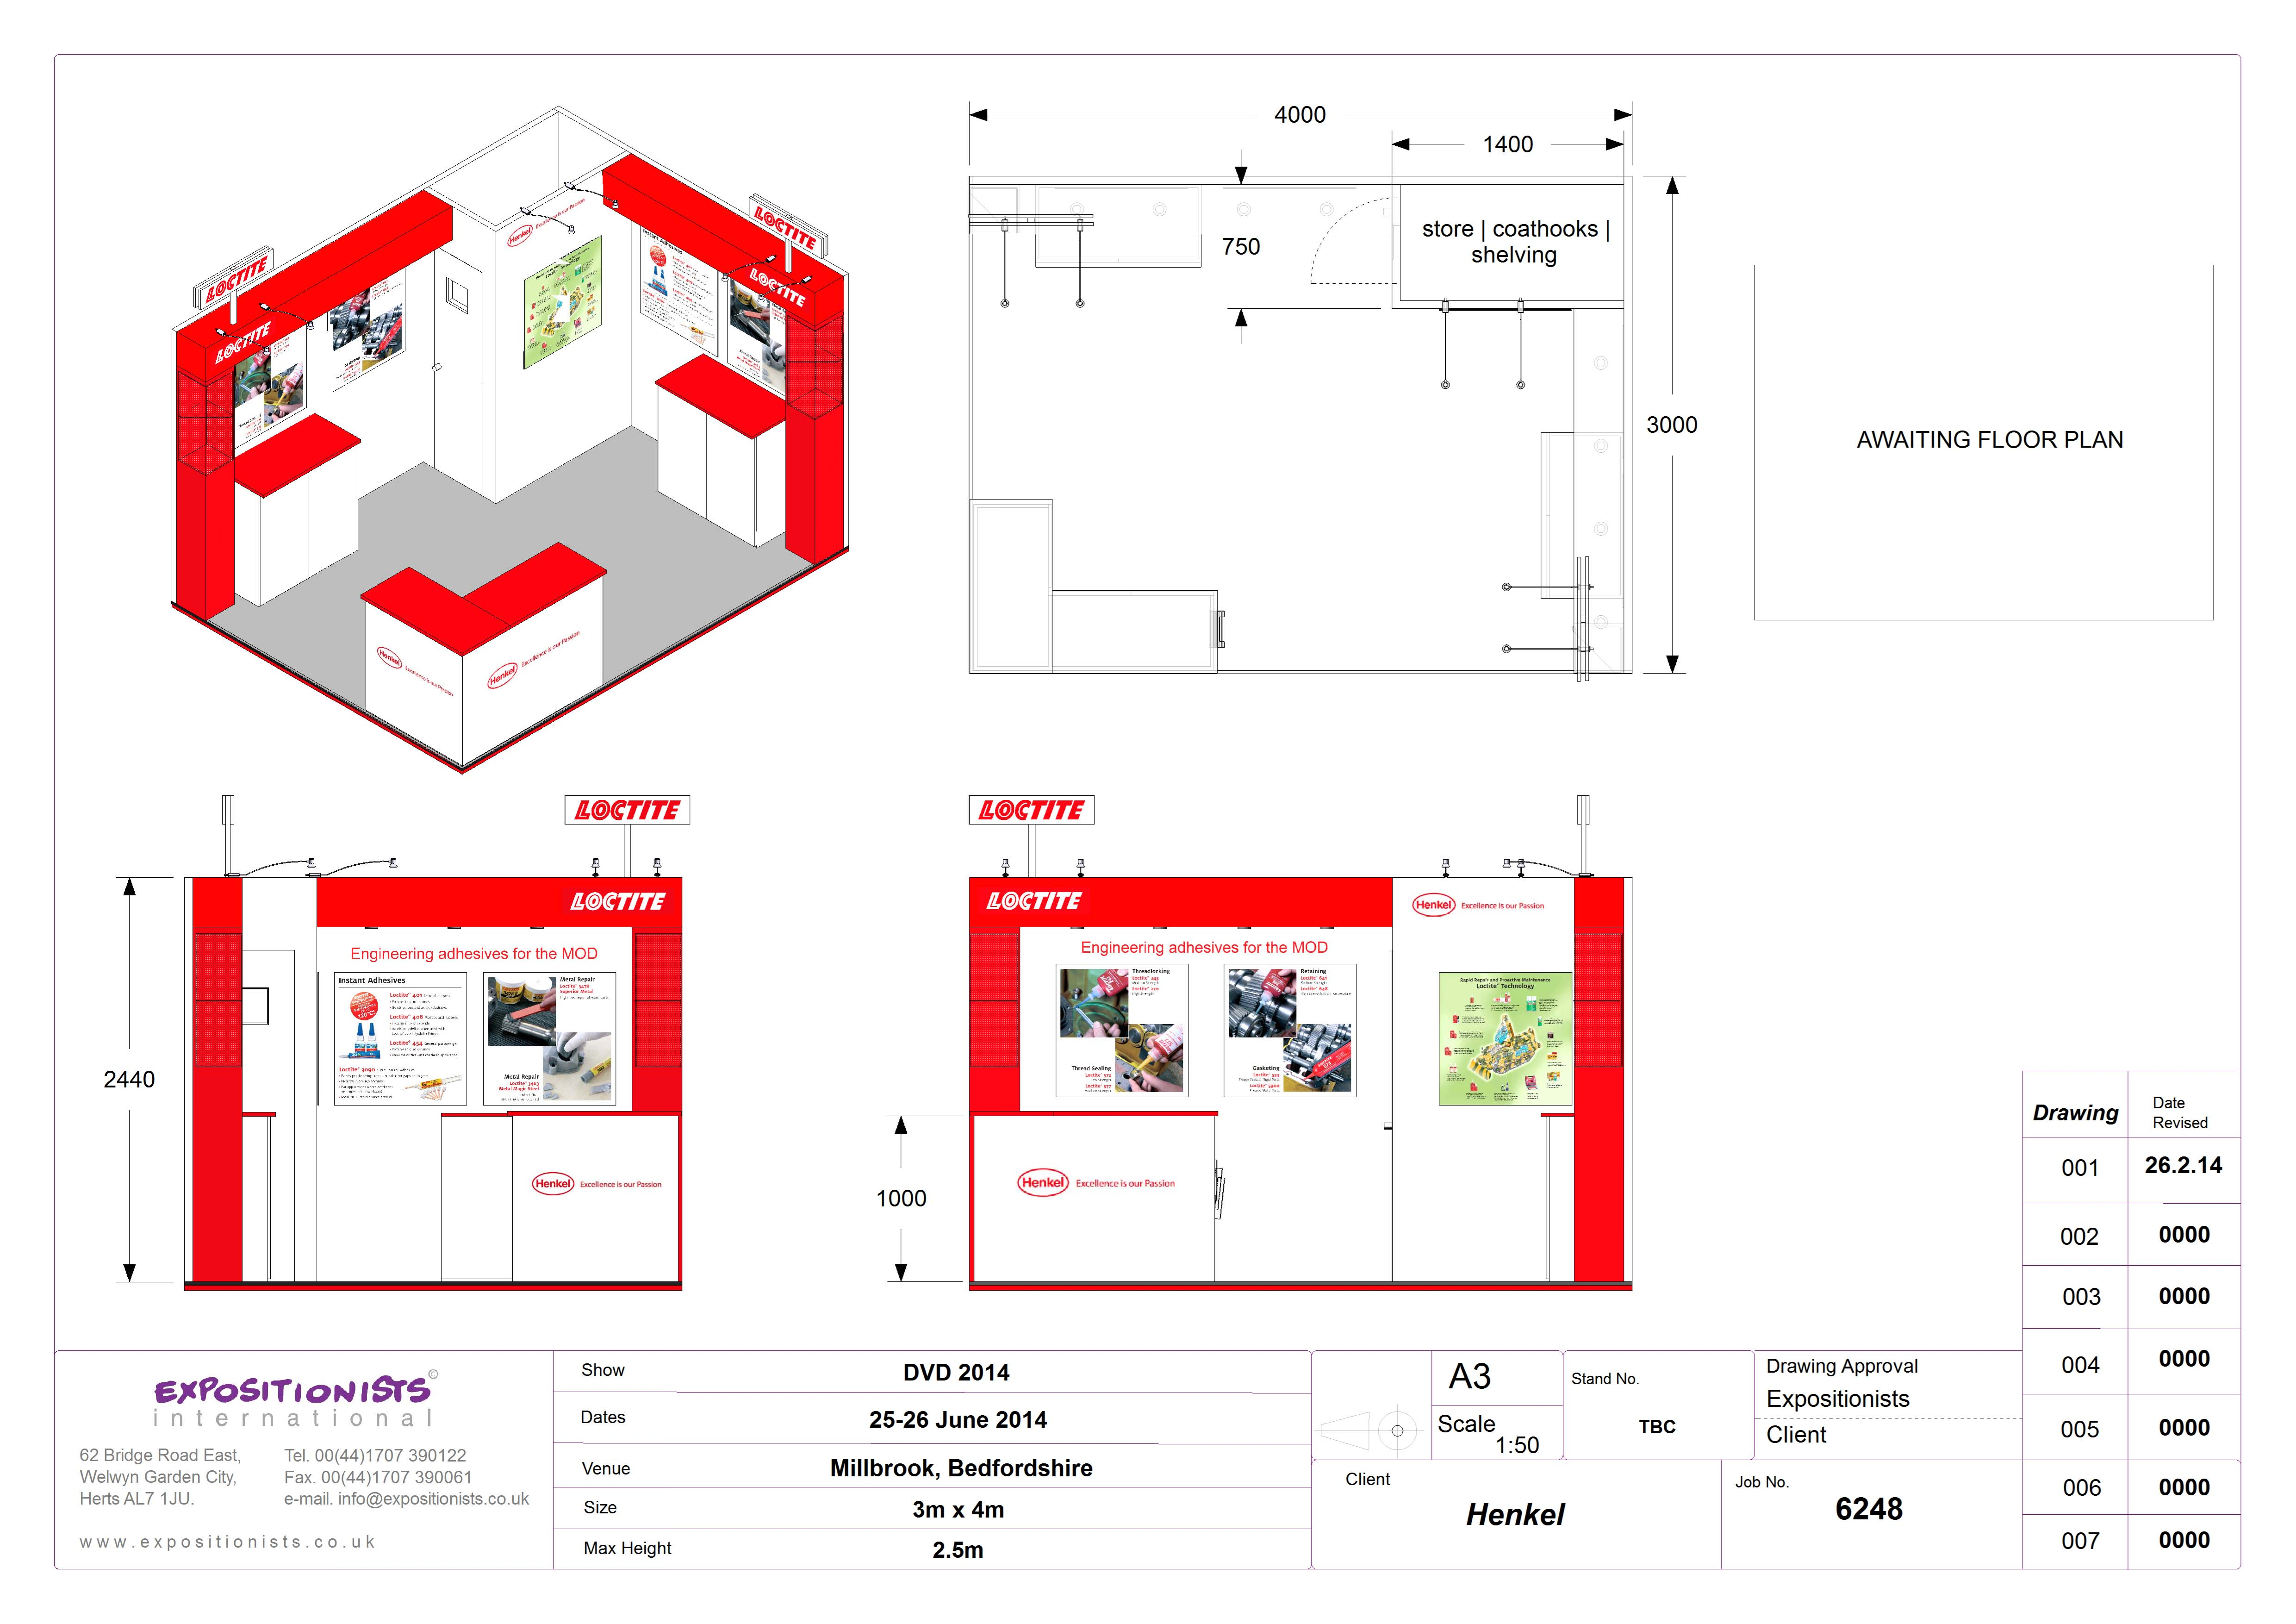 Exhibition stand contractor for Henkel